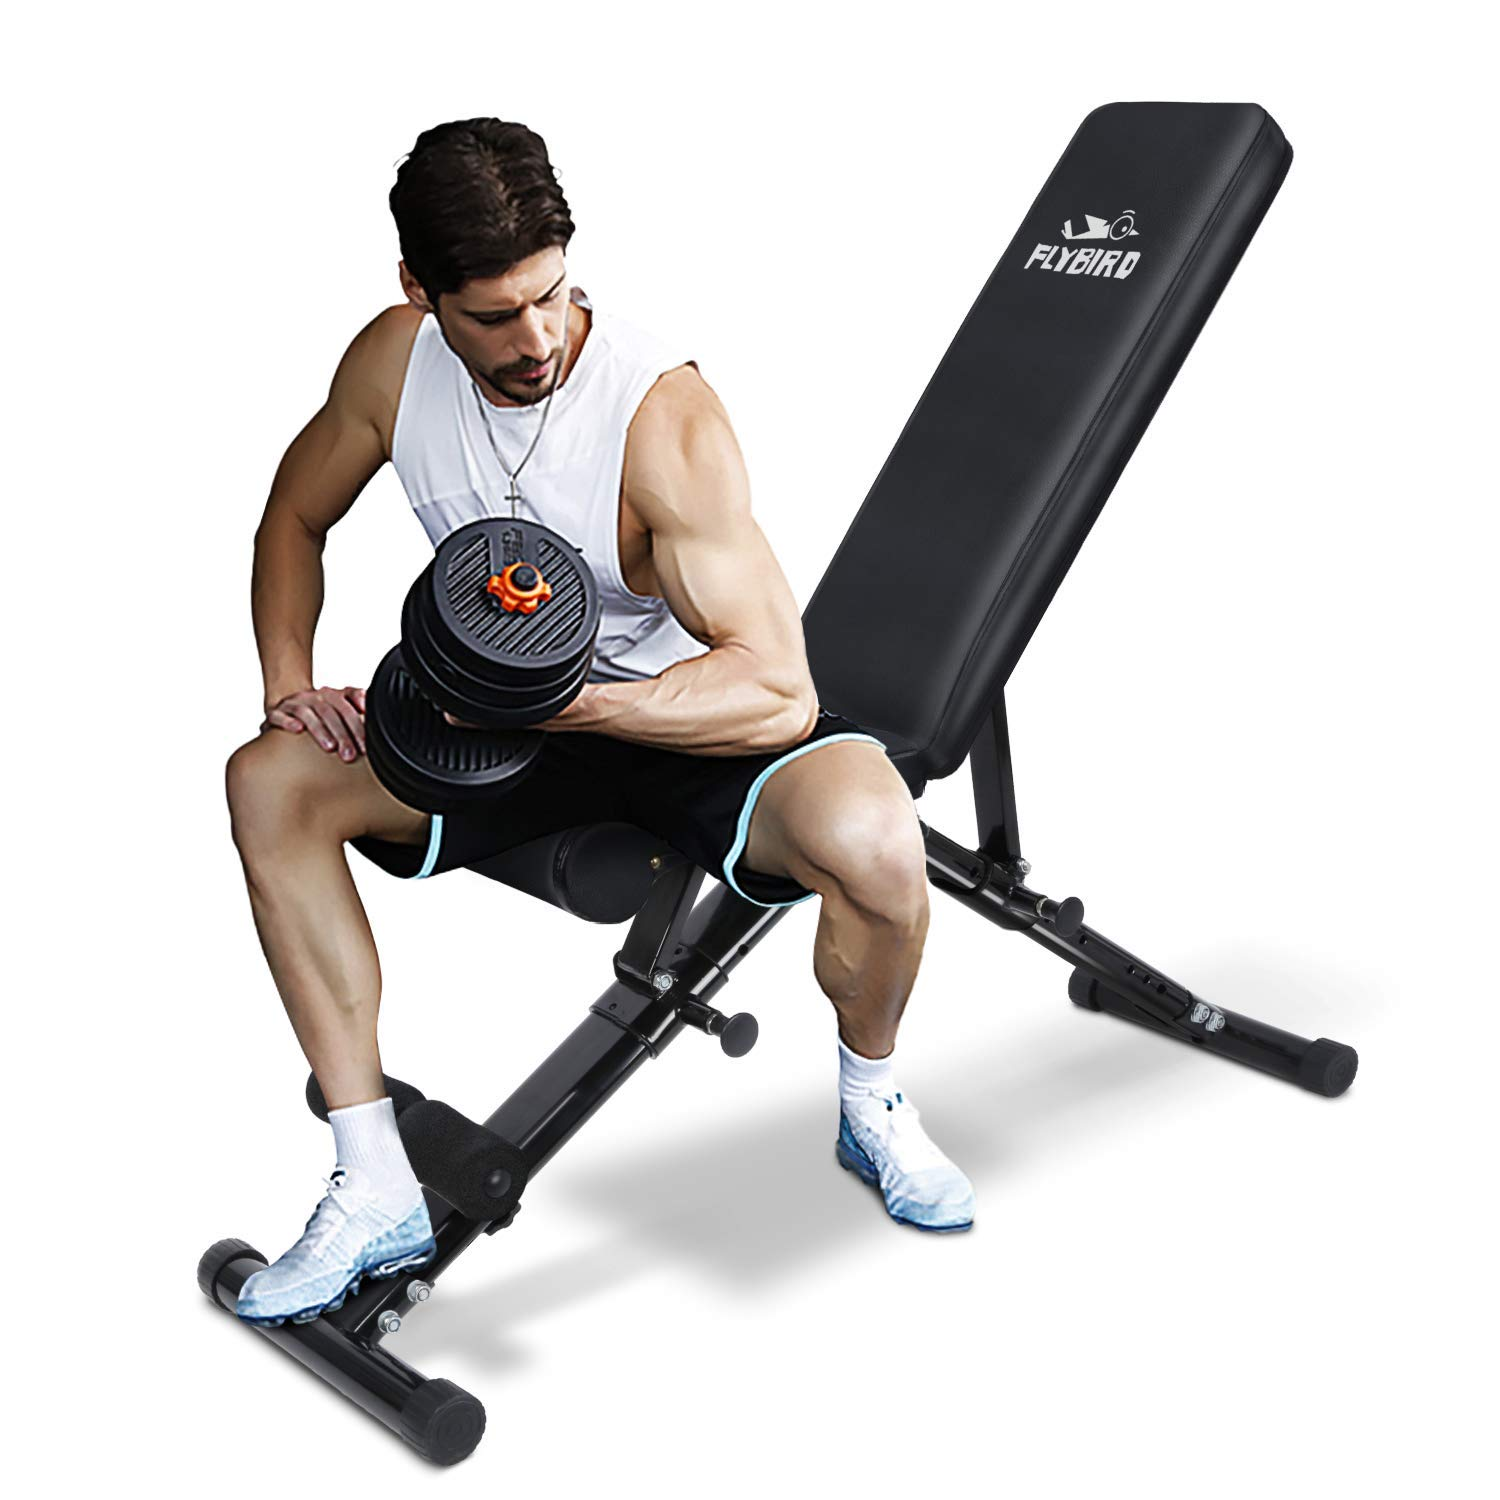 FLYBIRD Adjustable Weight Bench, Utility Gym Bench for Full Body Workout, Multi-Purpose Foldable Incline Decline Benchs